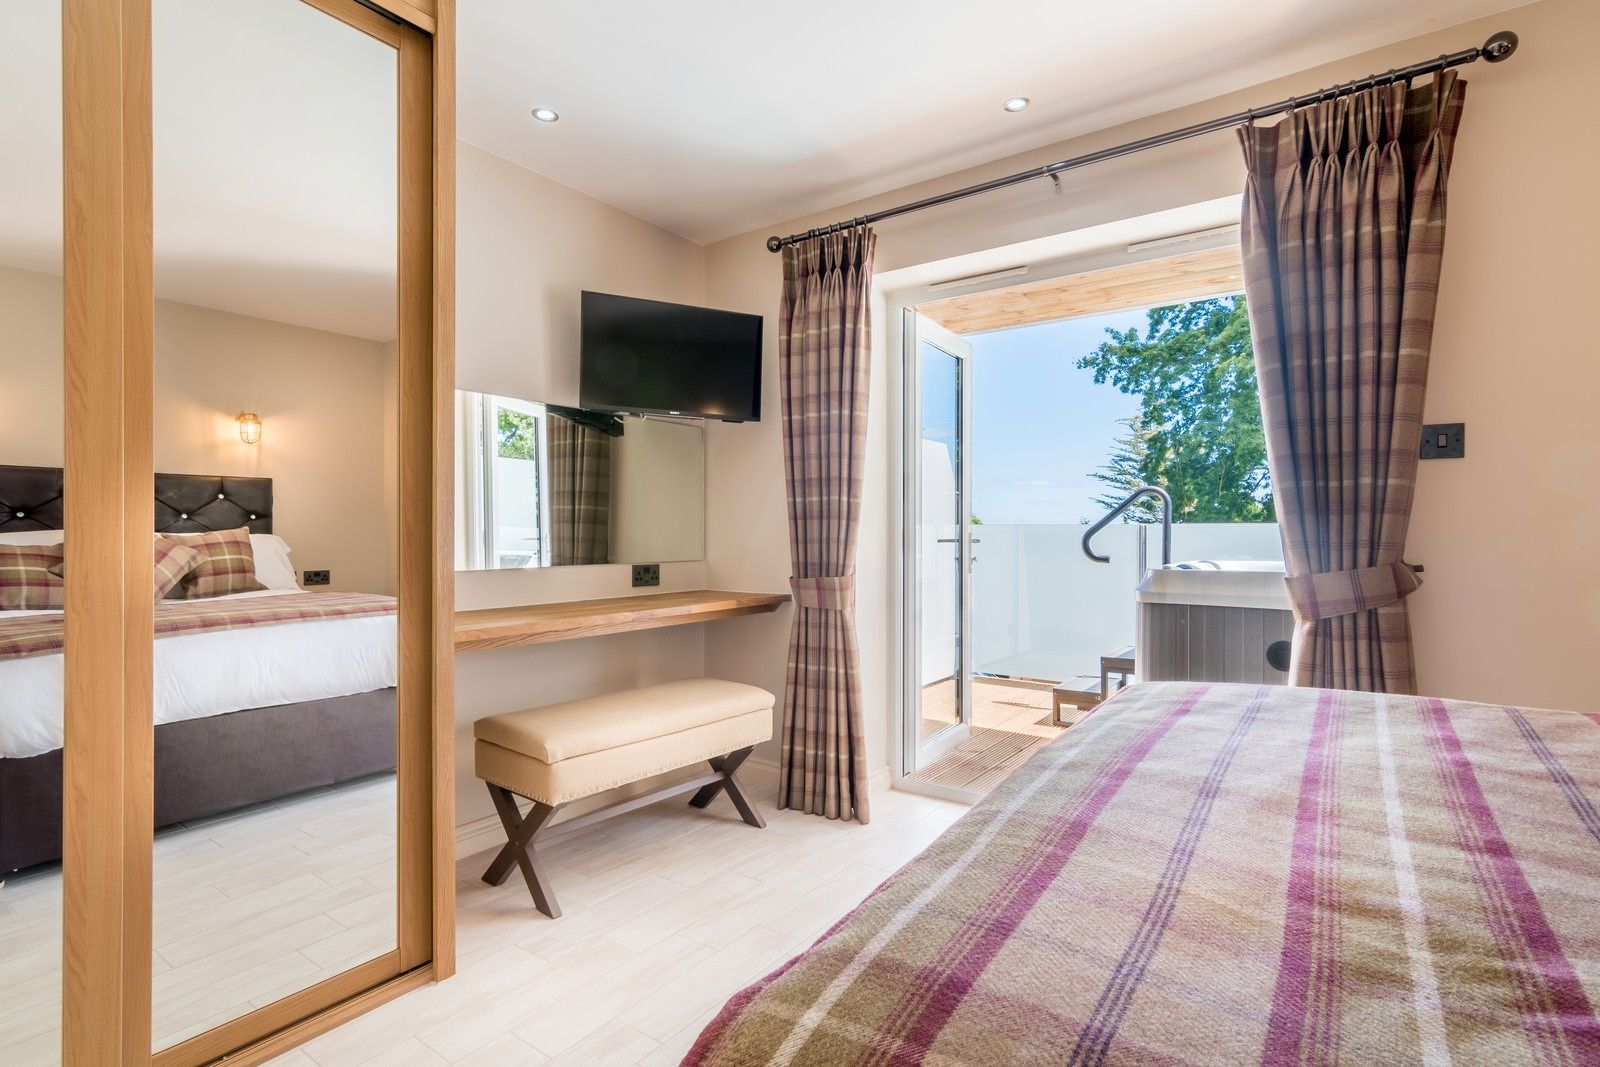 5 Reasons You Should Stay in the Luxurious and Outstanding Orestone Manor – Devon, Southwest England